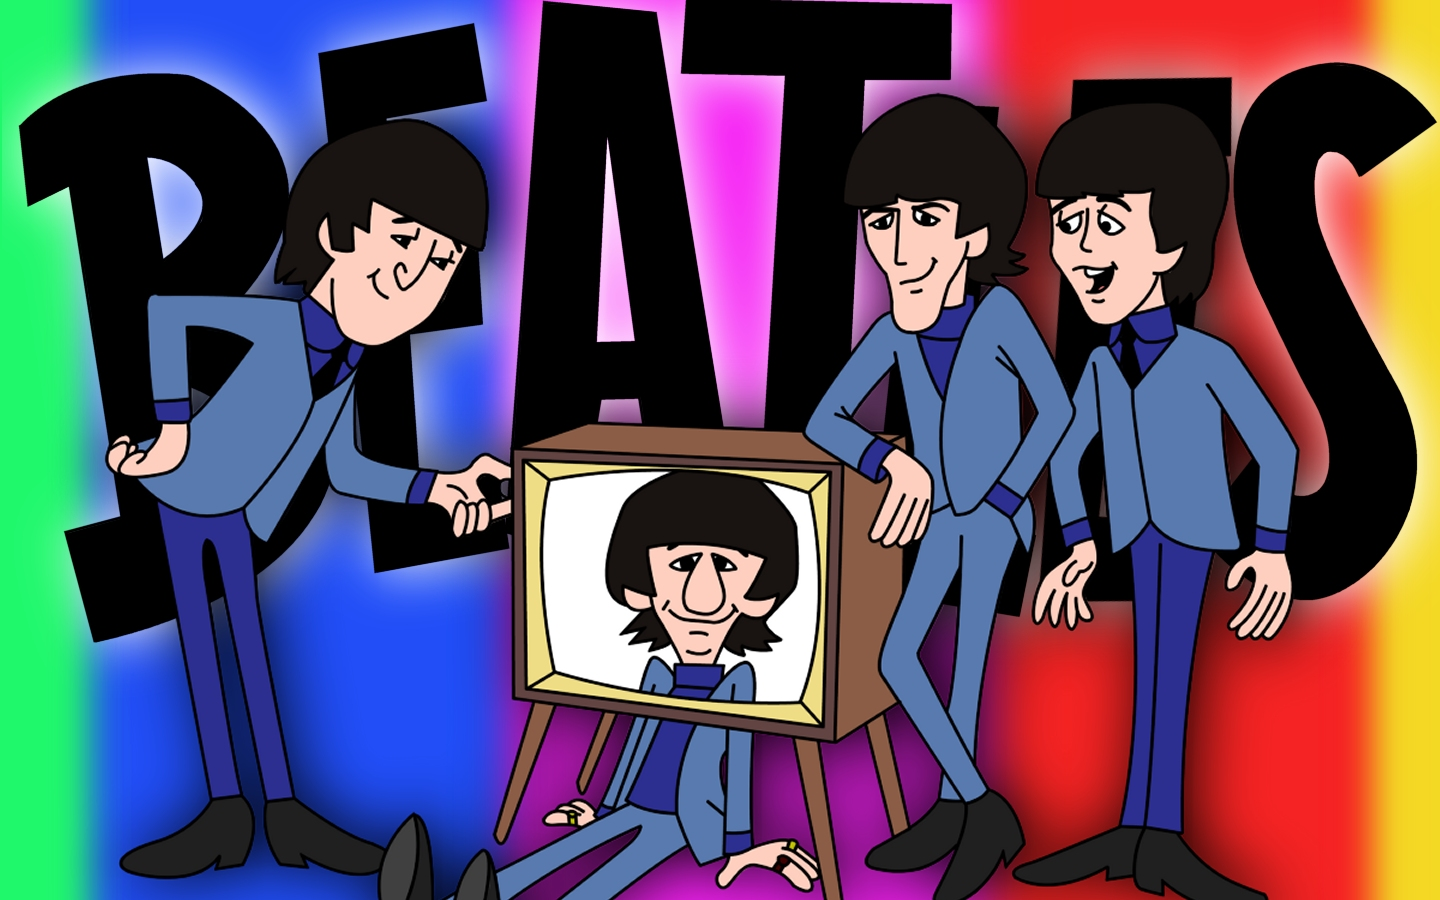 http://www.startrekanimated.com/ys_car_beatles_wall07.jpg